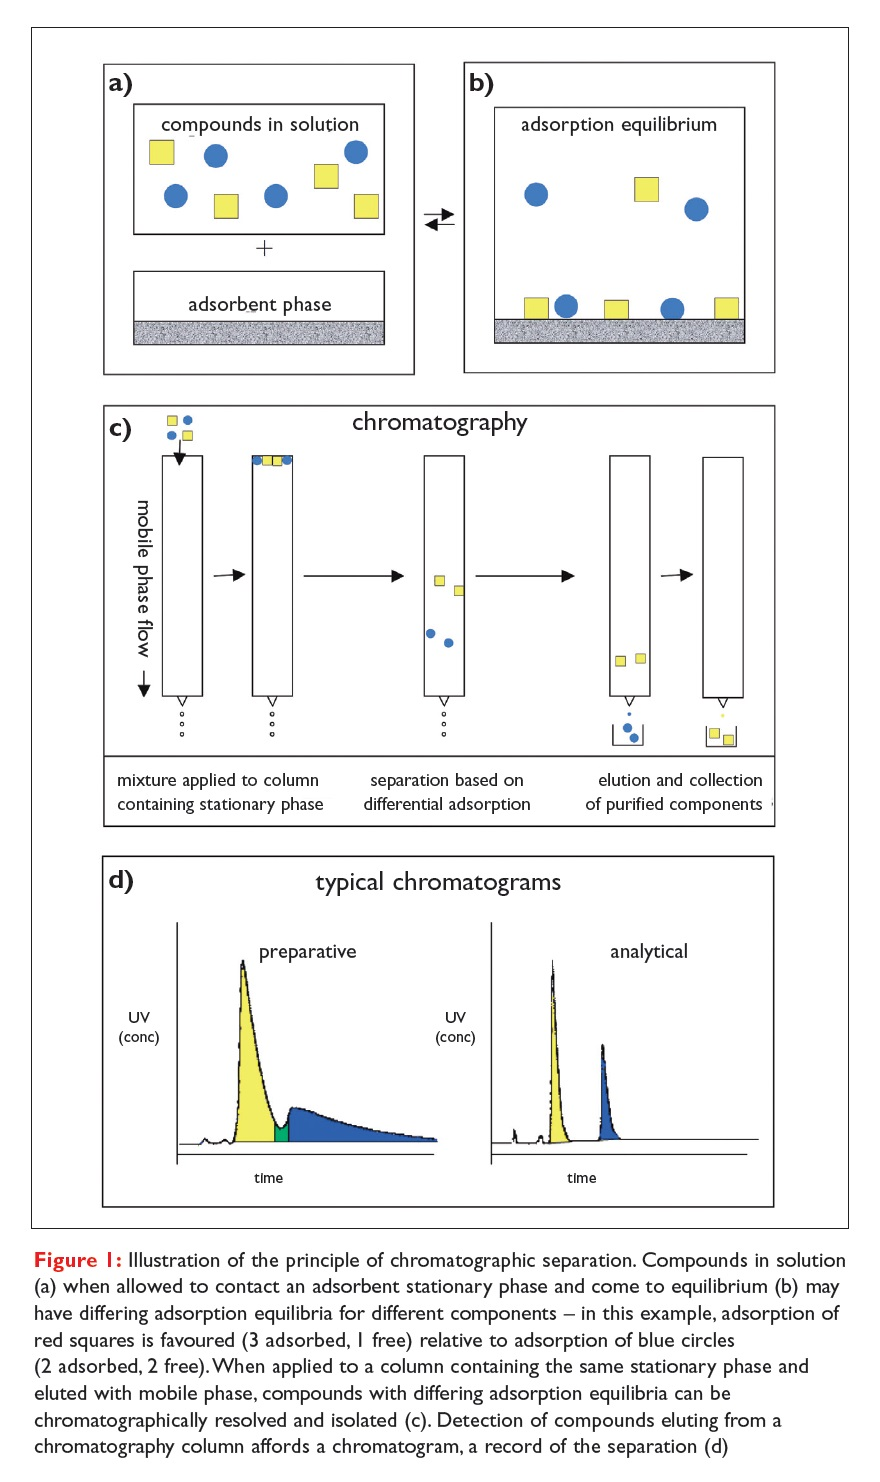 Figure 1 Illustration of the principle of chromatographic separation